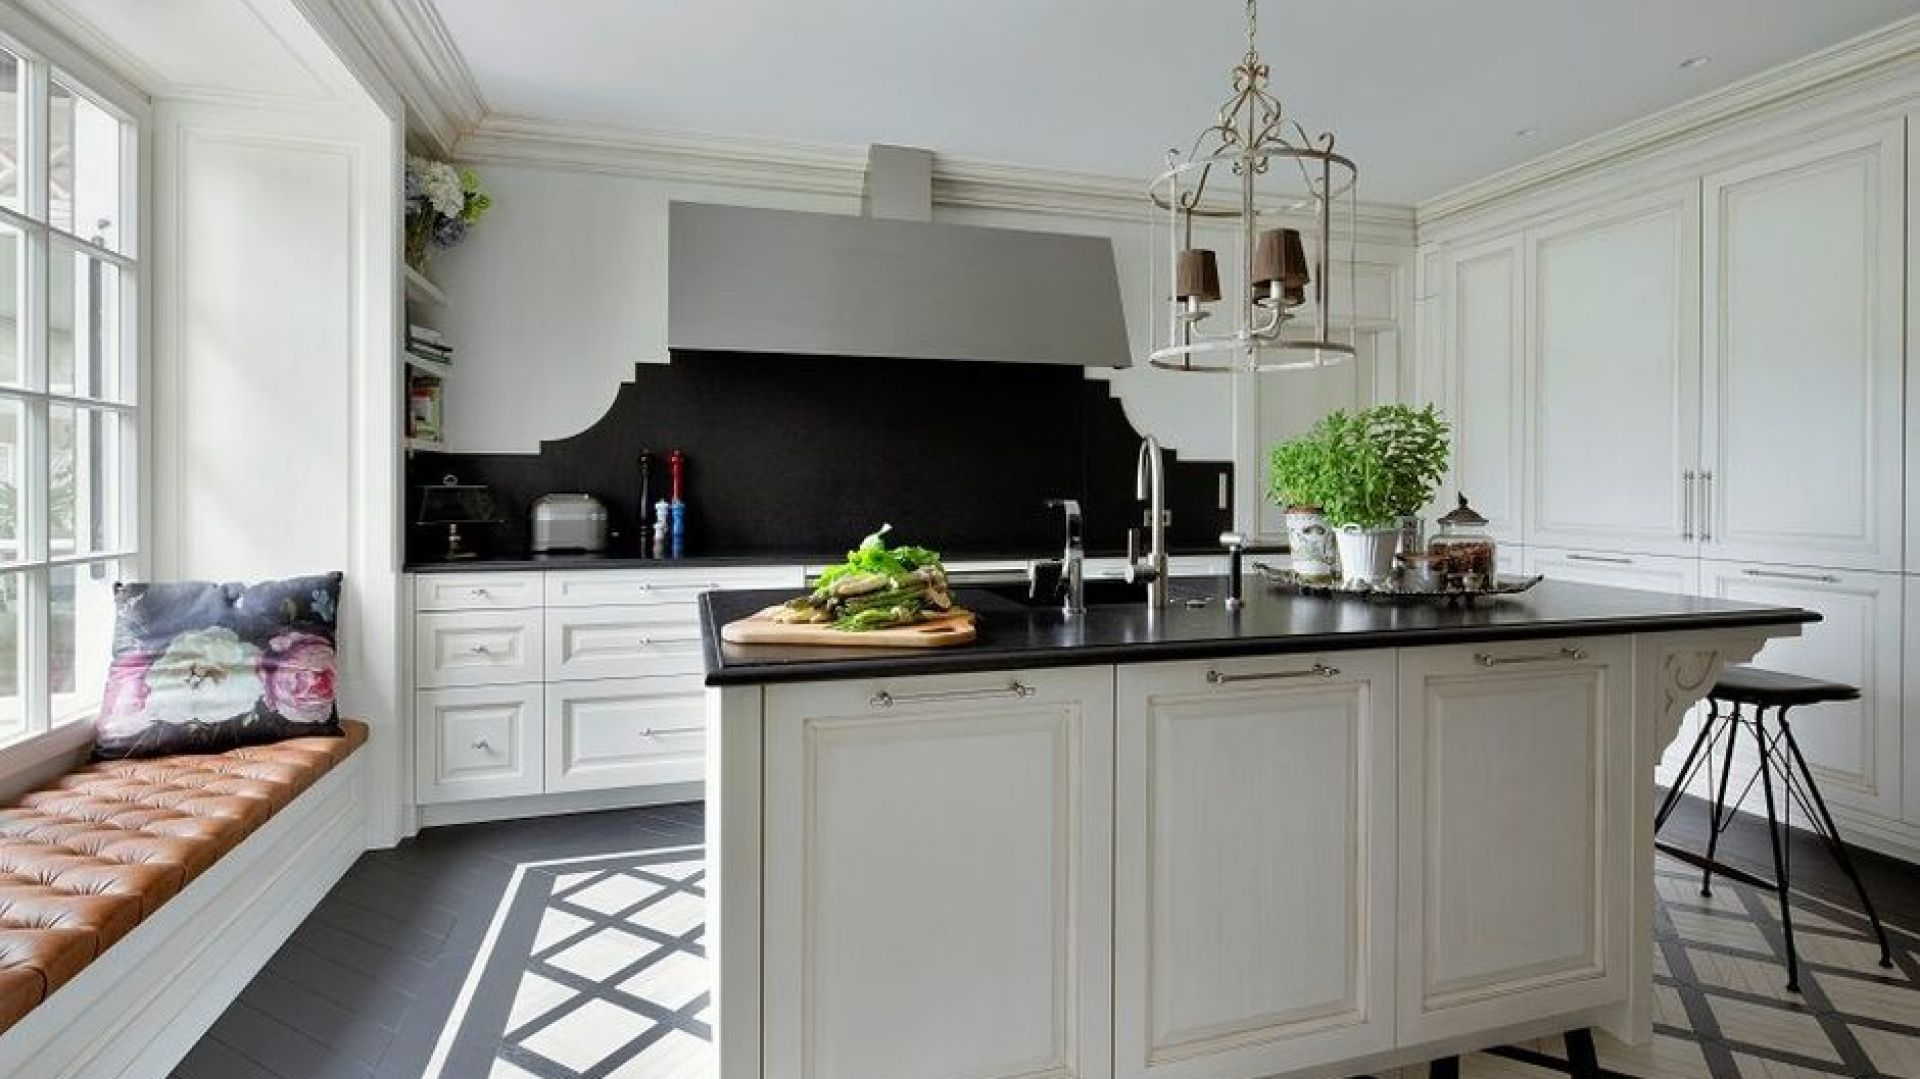 KitchenDesignOver£100000_WyzyrkowskiStudio_WhiterShadeofProvance_3-891x594.jpg